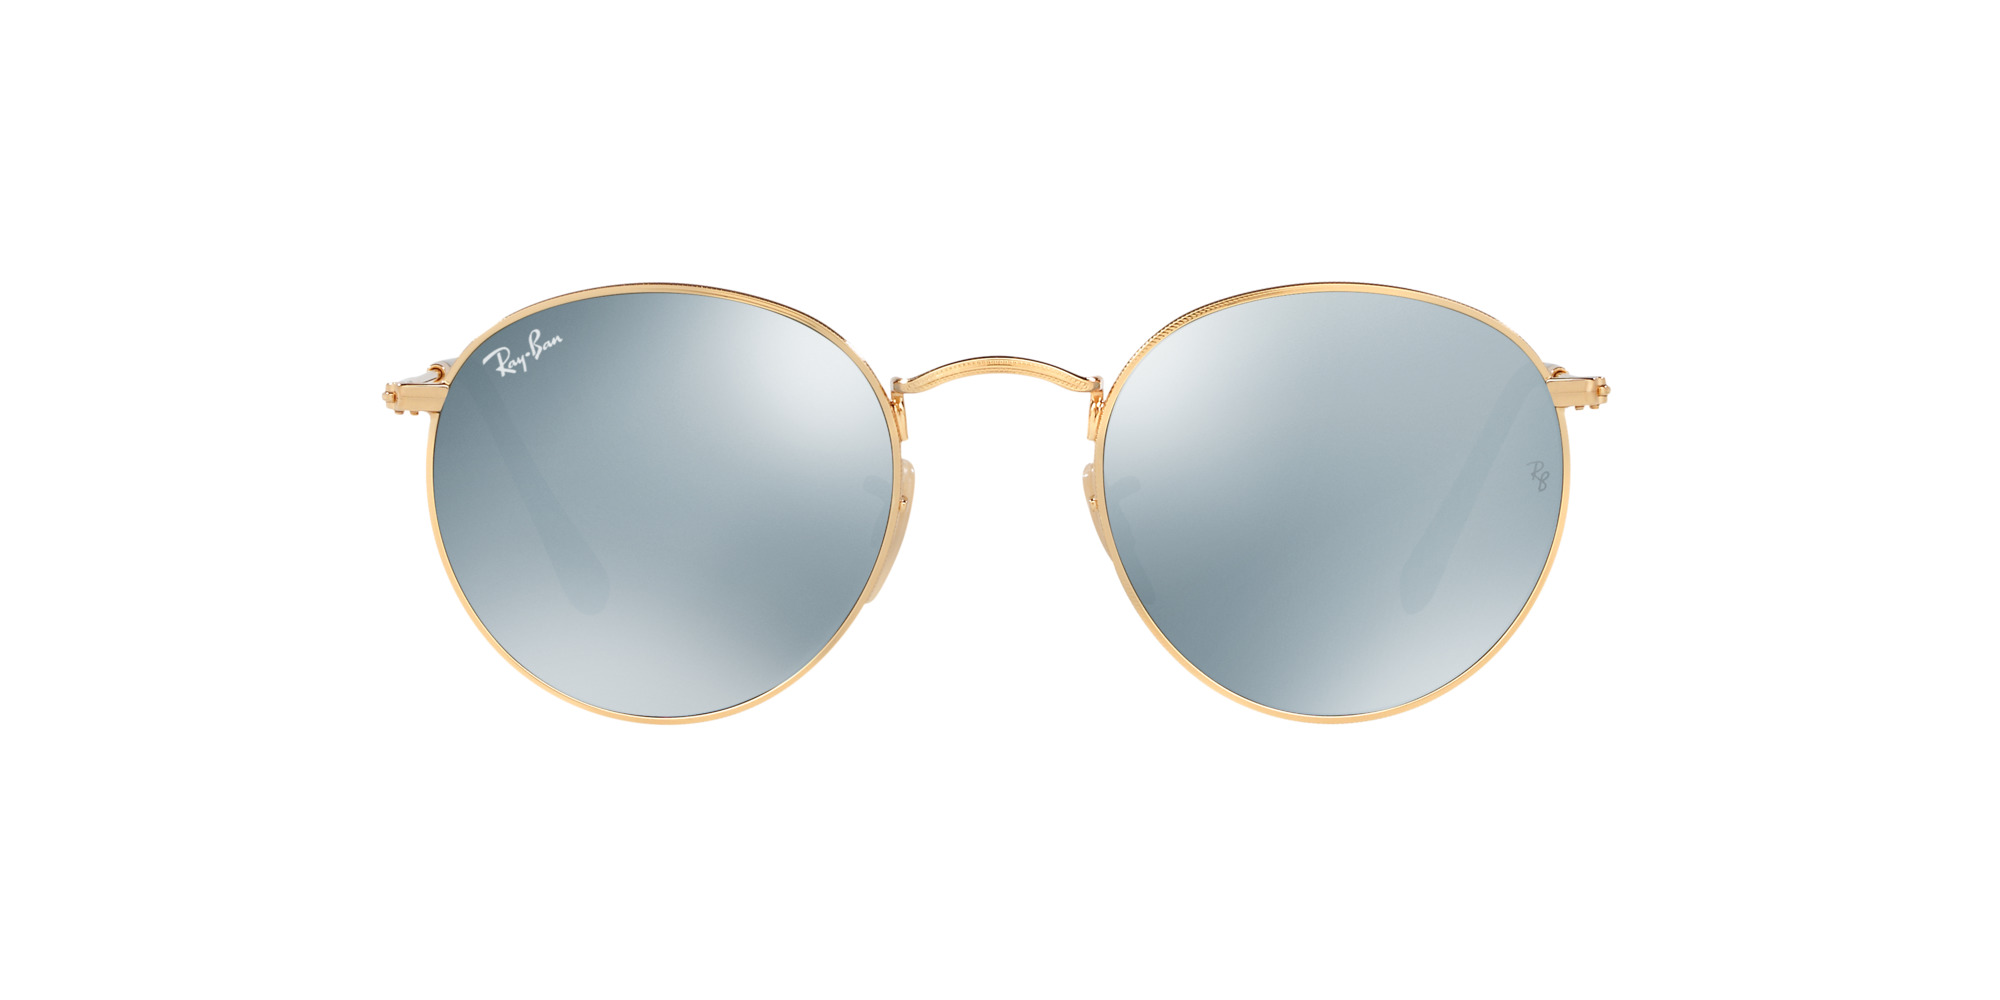 RAY-BAN ROUND METAL RB 3447N 001/30-360